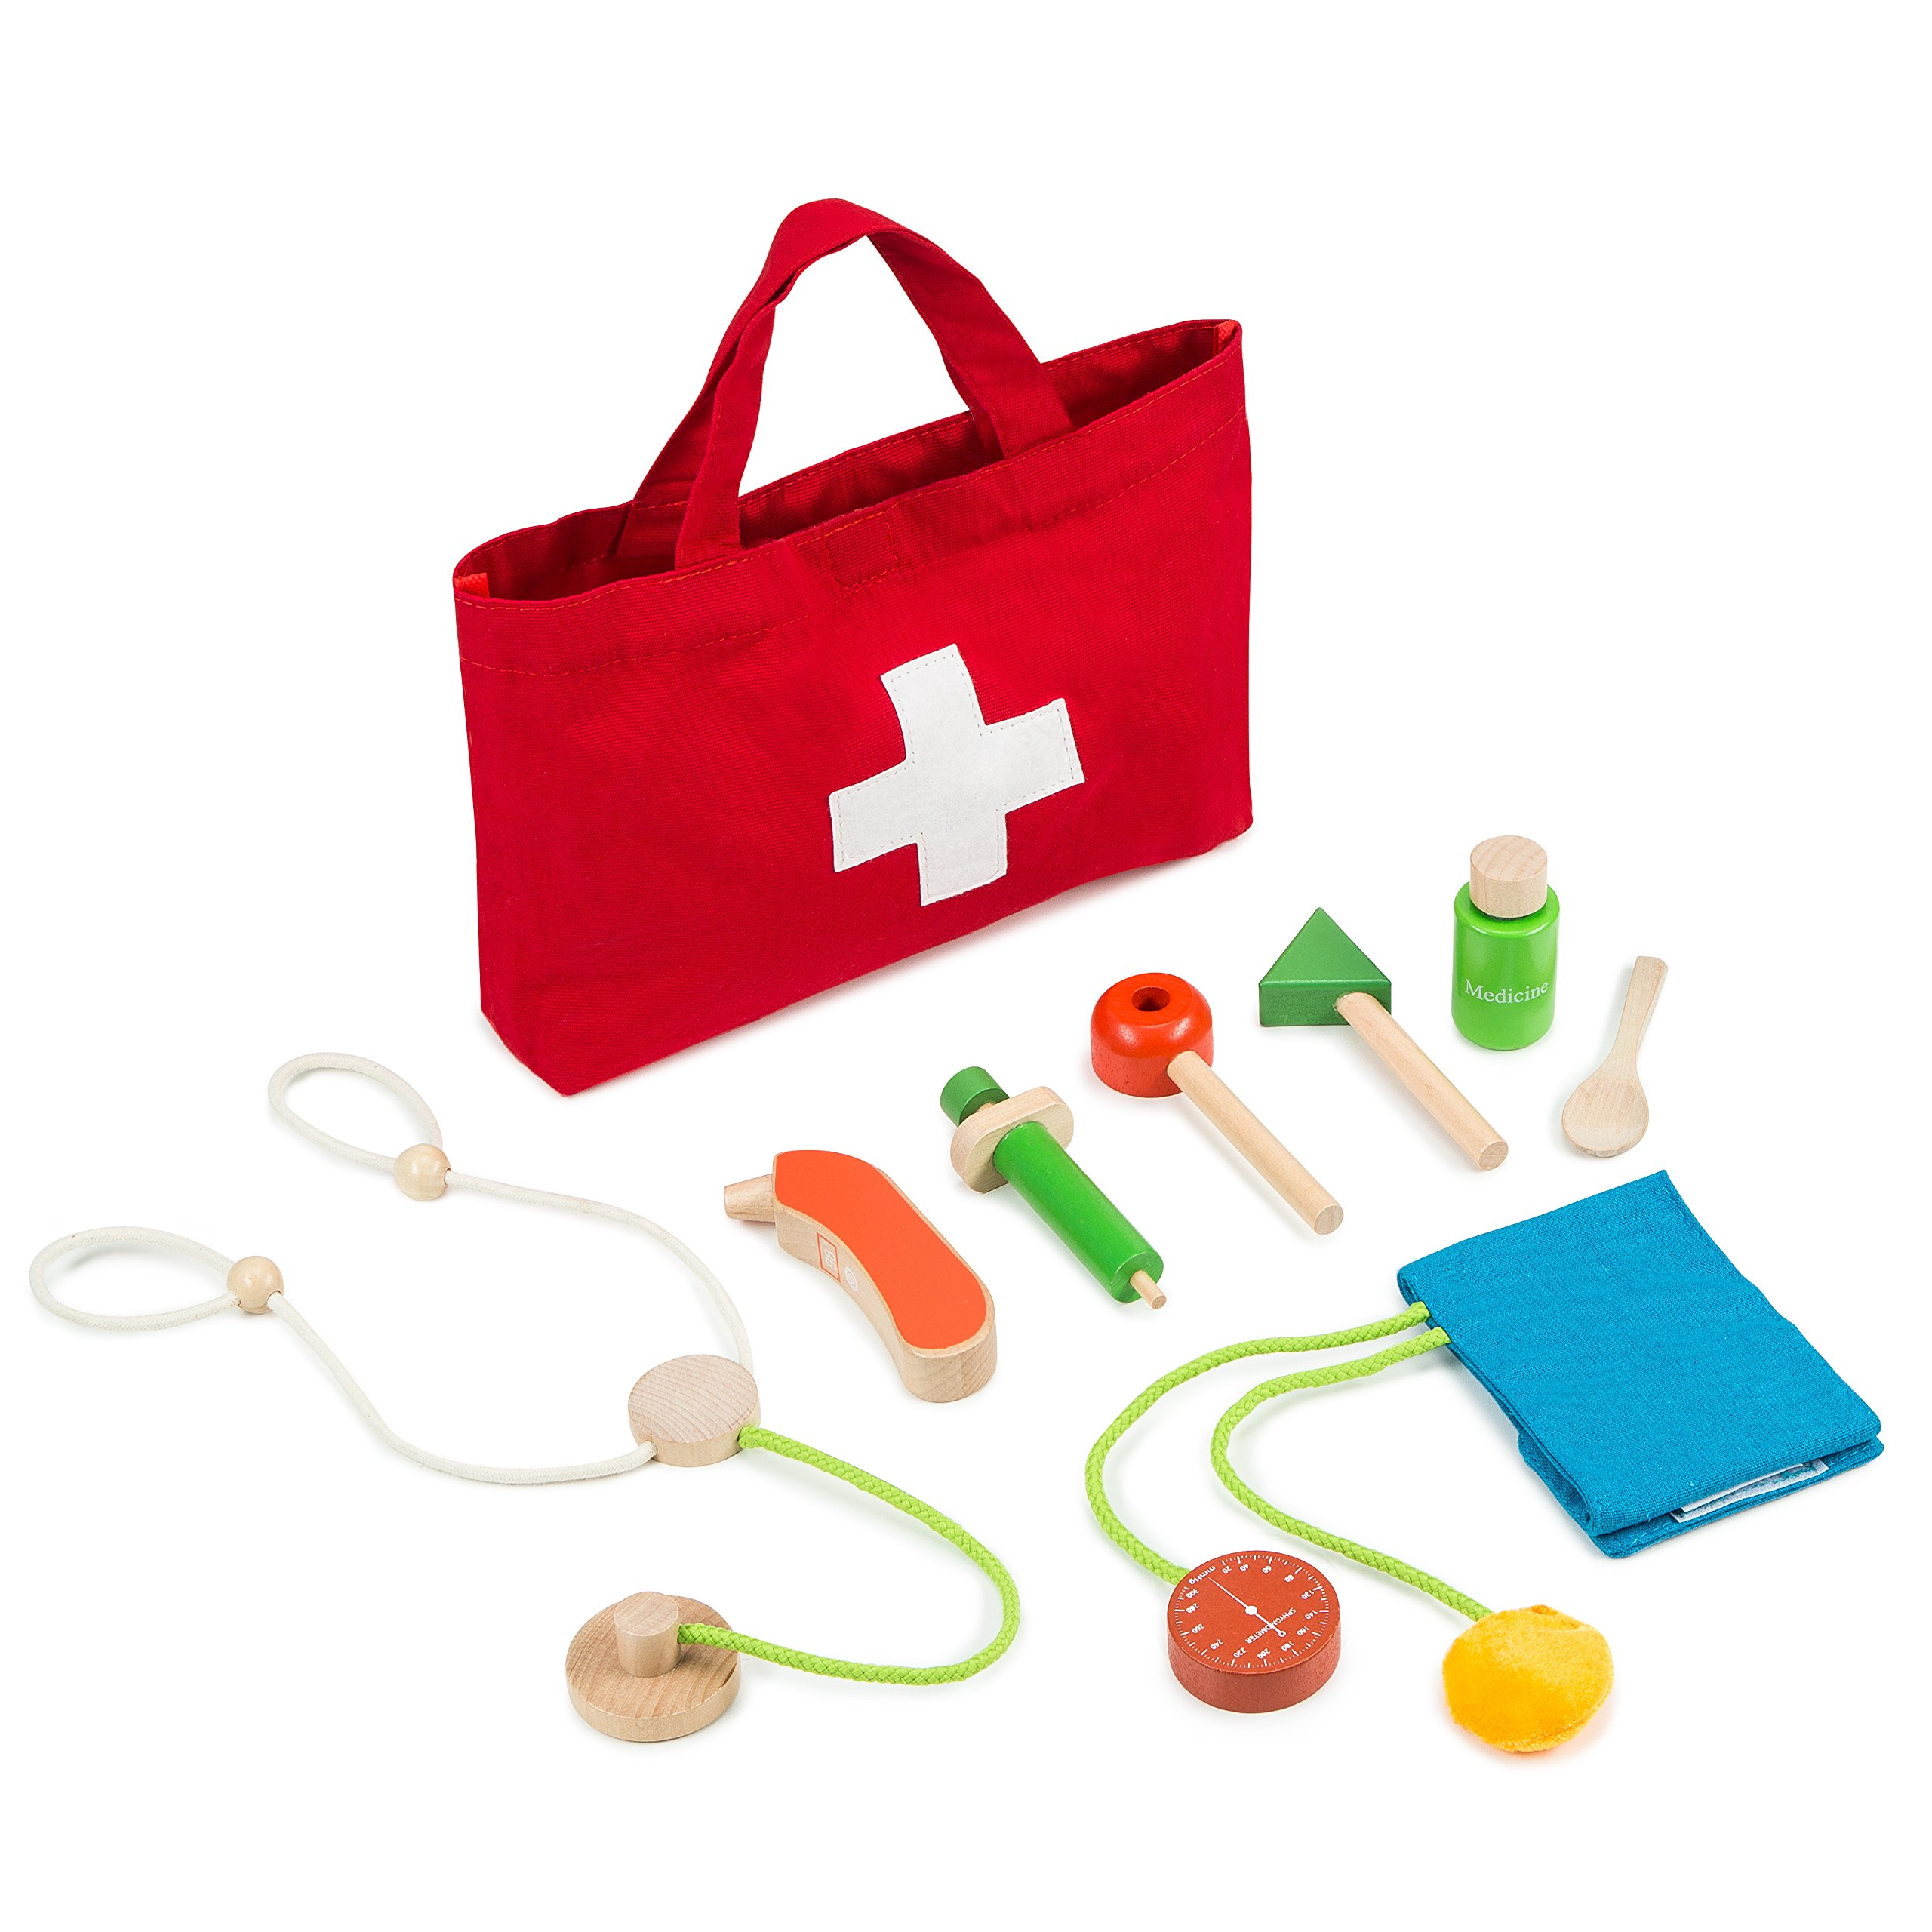 Kiddie Lark Wooden Toy Doctor Kit For Kids By Pretend Medical Play Set For Boys & Girls   Learning & Educational Role Play Set For Children & Older Toddlers   Safe & Certified Wood Pieces